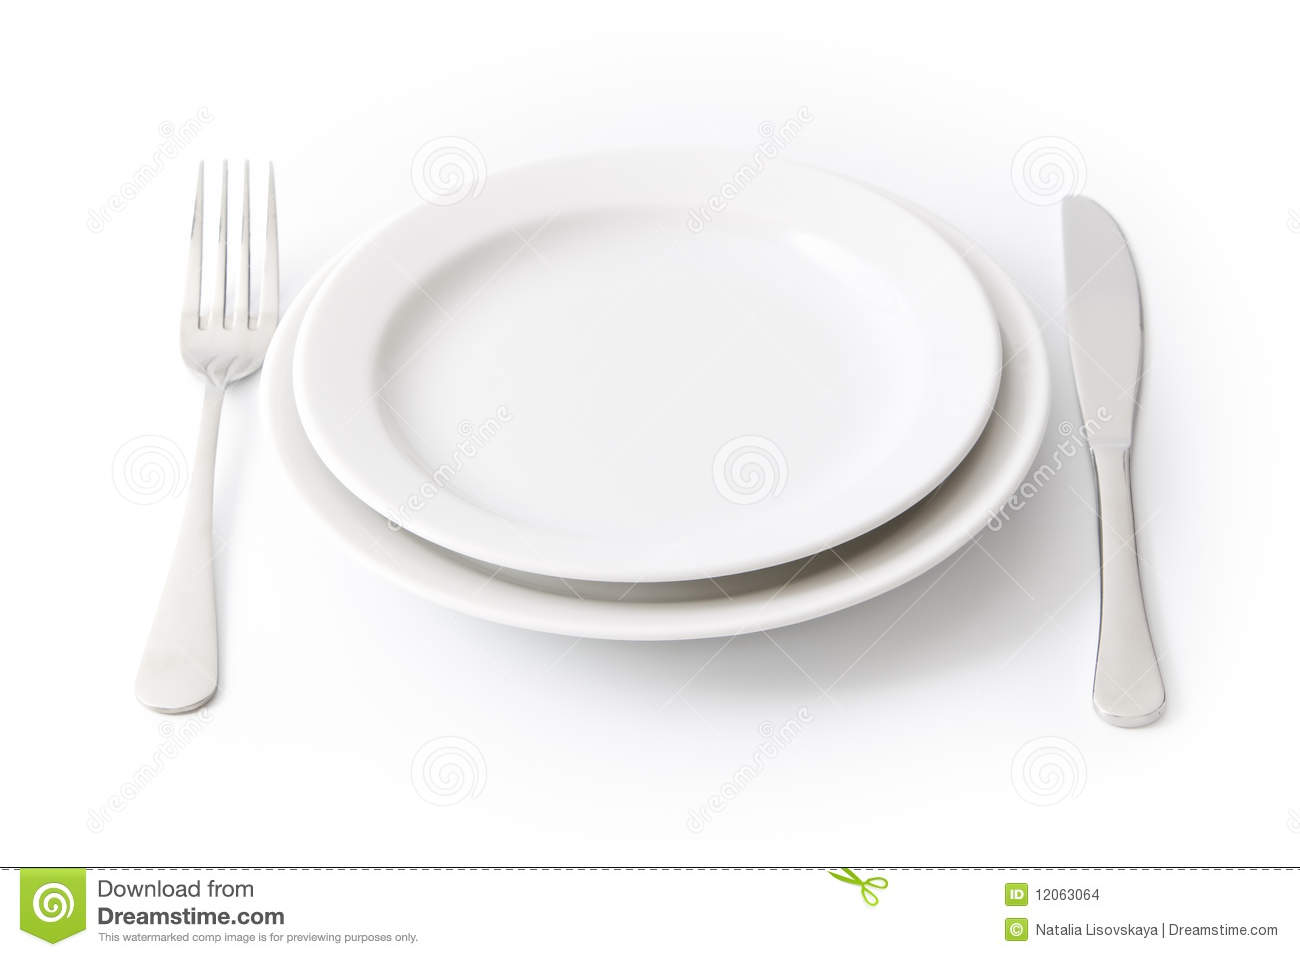 Empty dinner plate  sc 1 st  Dreamstime.com & Empty dinner plate stock photo. Image of white round - 12063064